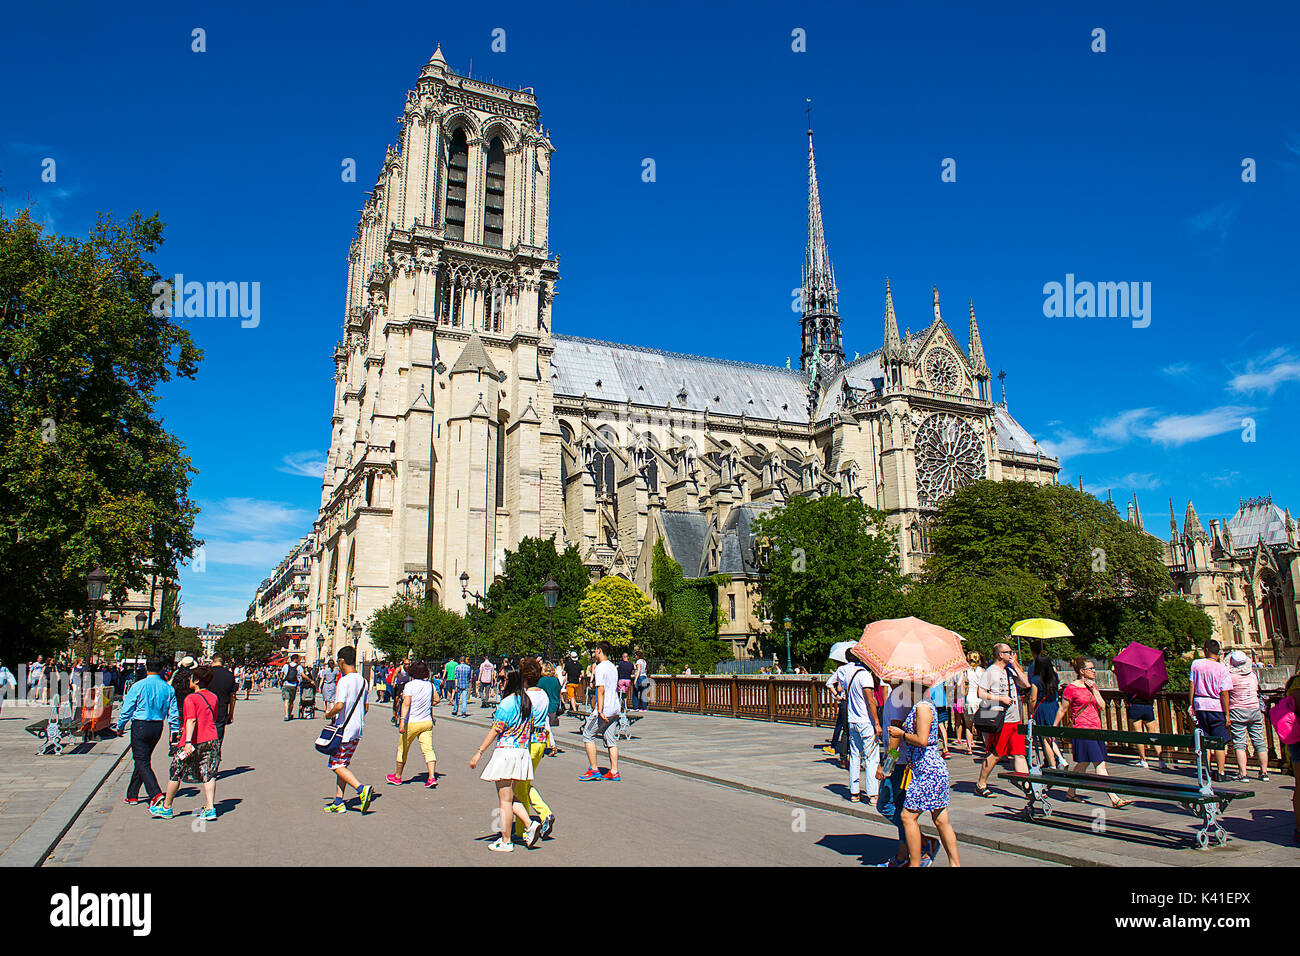 Notre Dame Cathedral,Paris,France - Stock Image